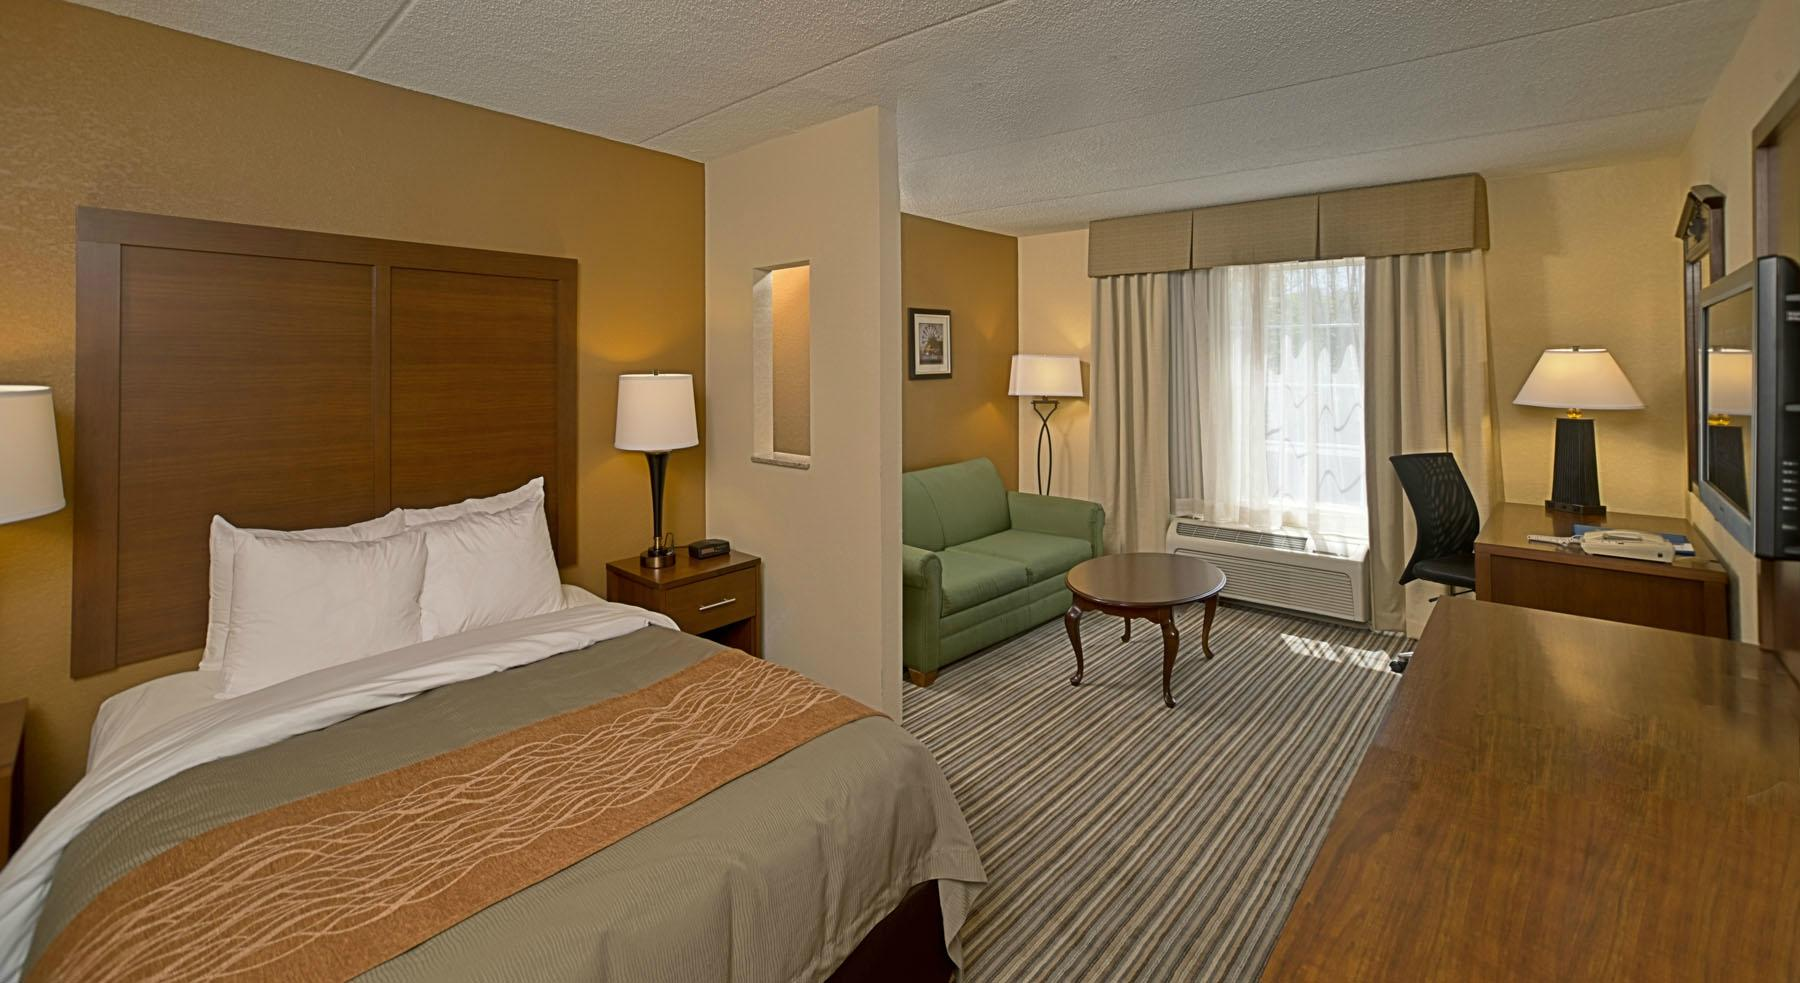 Comfort Inn At The Park Updated 2017 Hotel Reviews Price 2 Bedroom ...